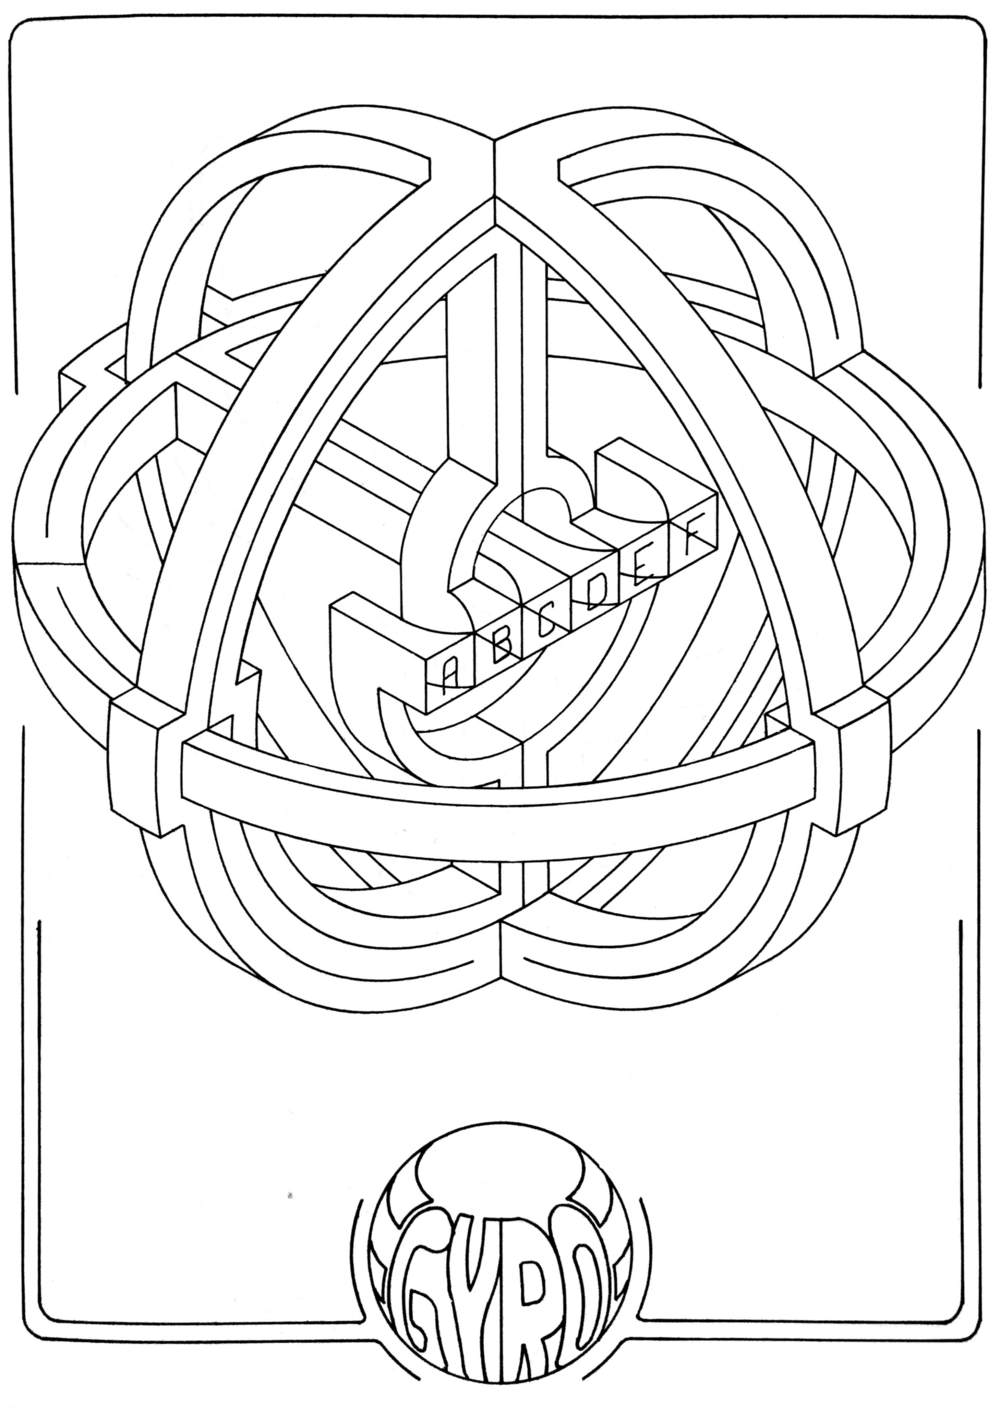 """Author - P. A. Hauser, published in  """"3D Space Mazes"""" by Dover"""